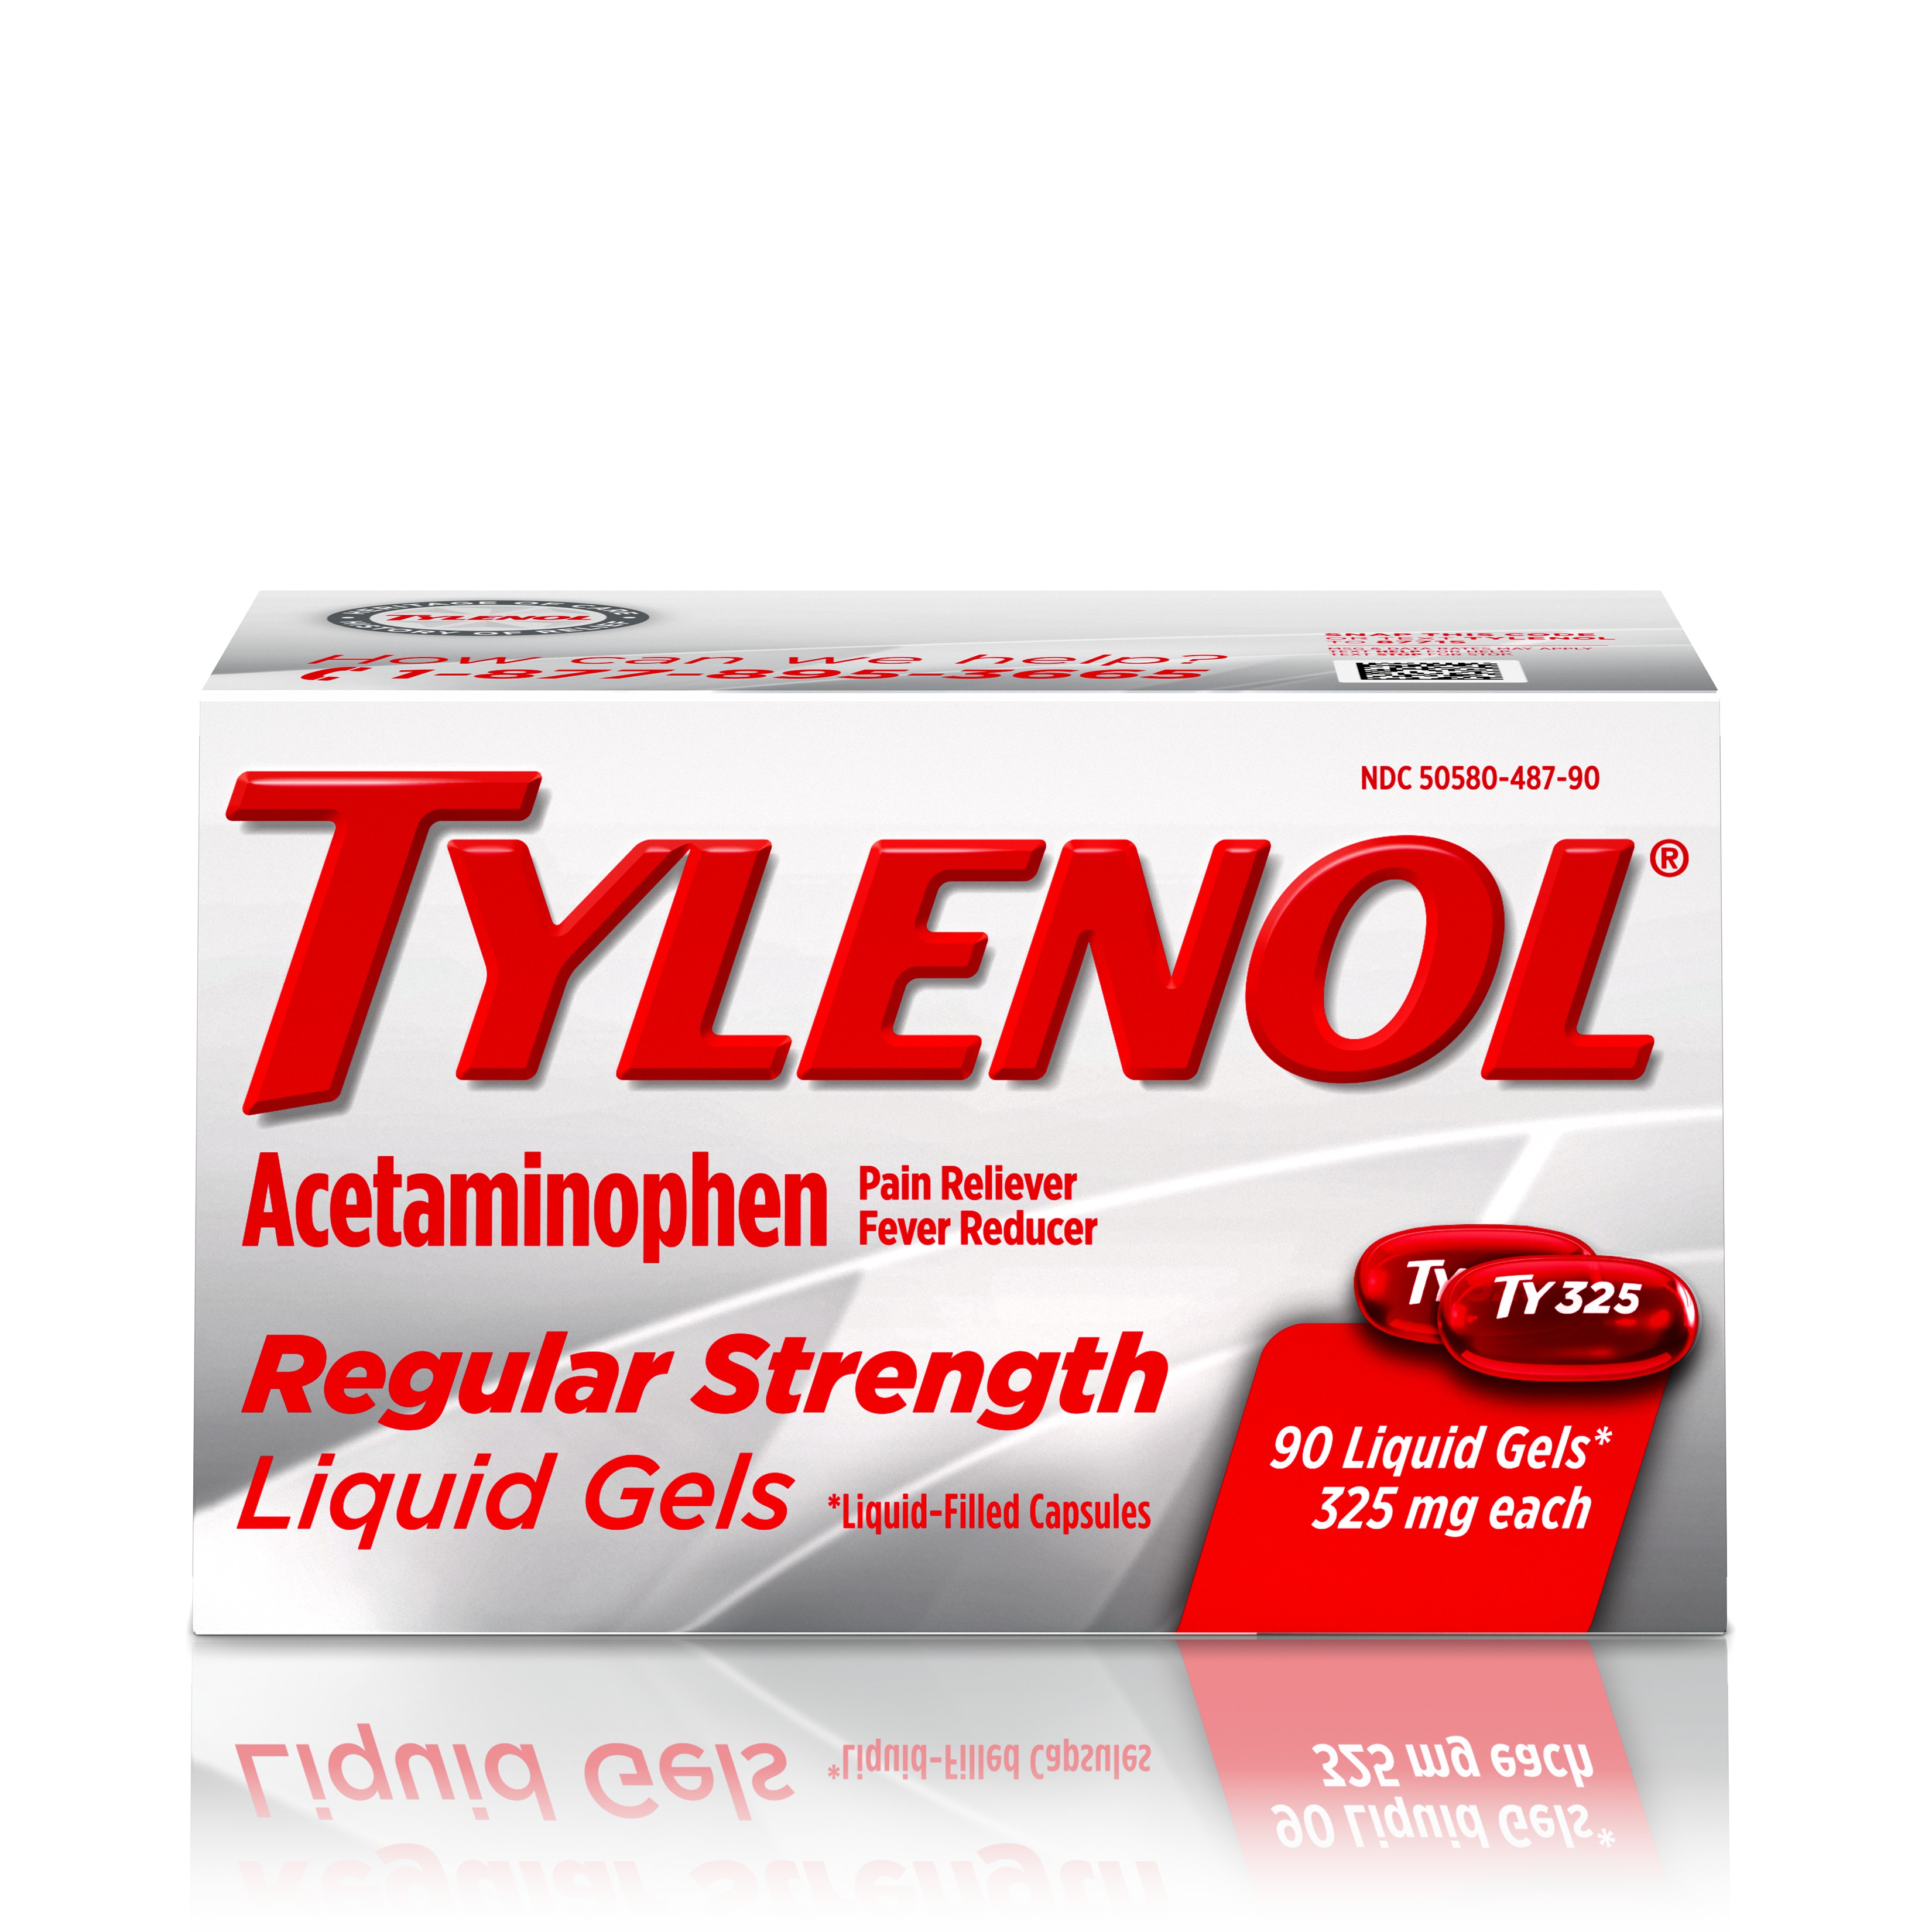 Tylenol Regular Strength Liquid Gels, Fever Reducer and Pain Reliever, 325 mg, 90 ct.